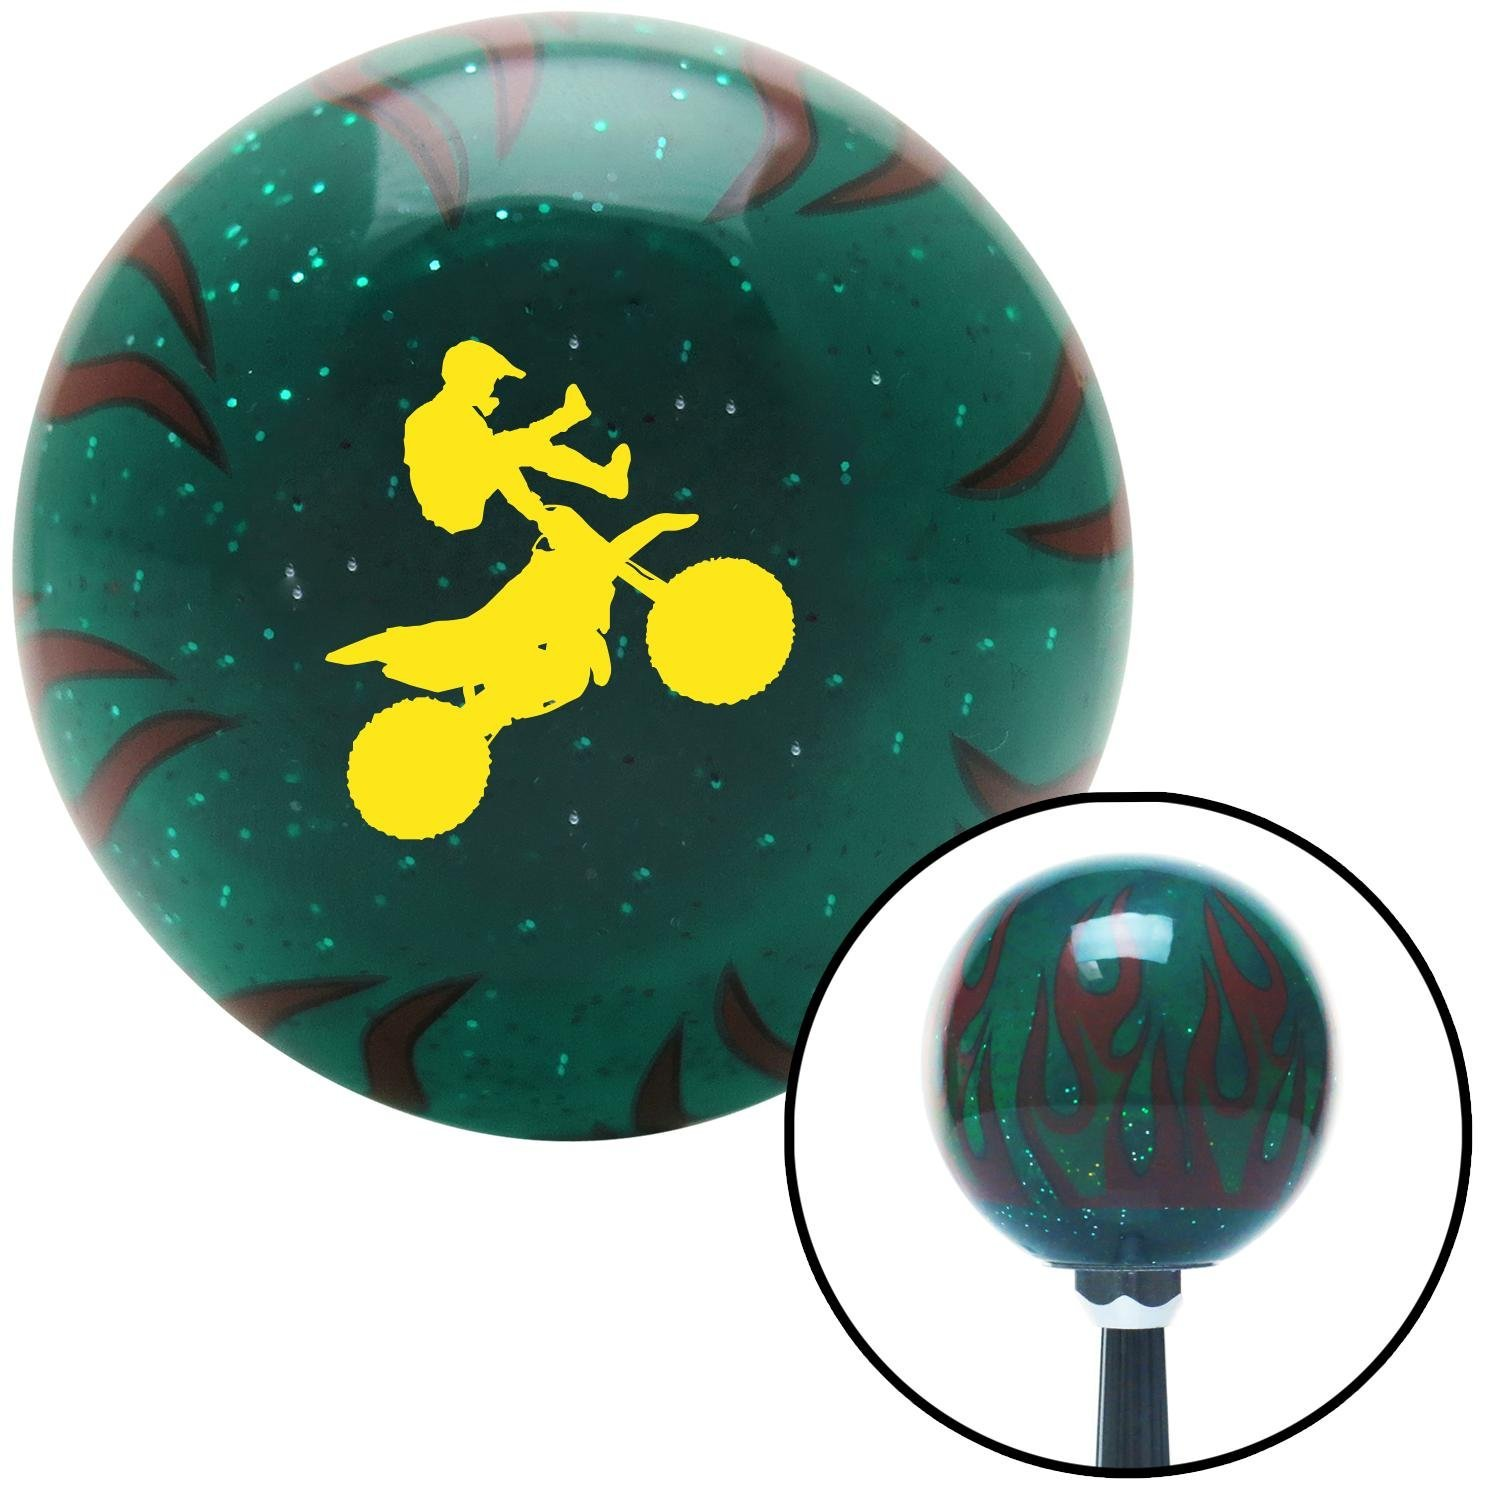 Yellow Motocross Rider American Shifter 265135 Green Flame Metal Flake Shift Knob with M16 x 1.5 Insert